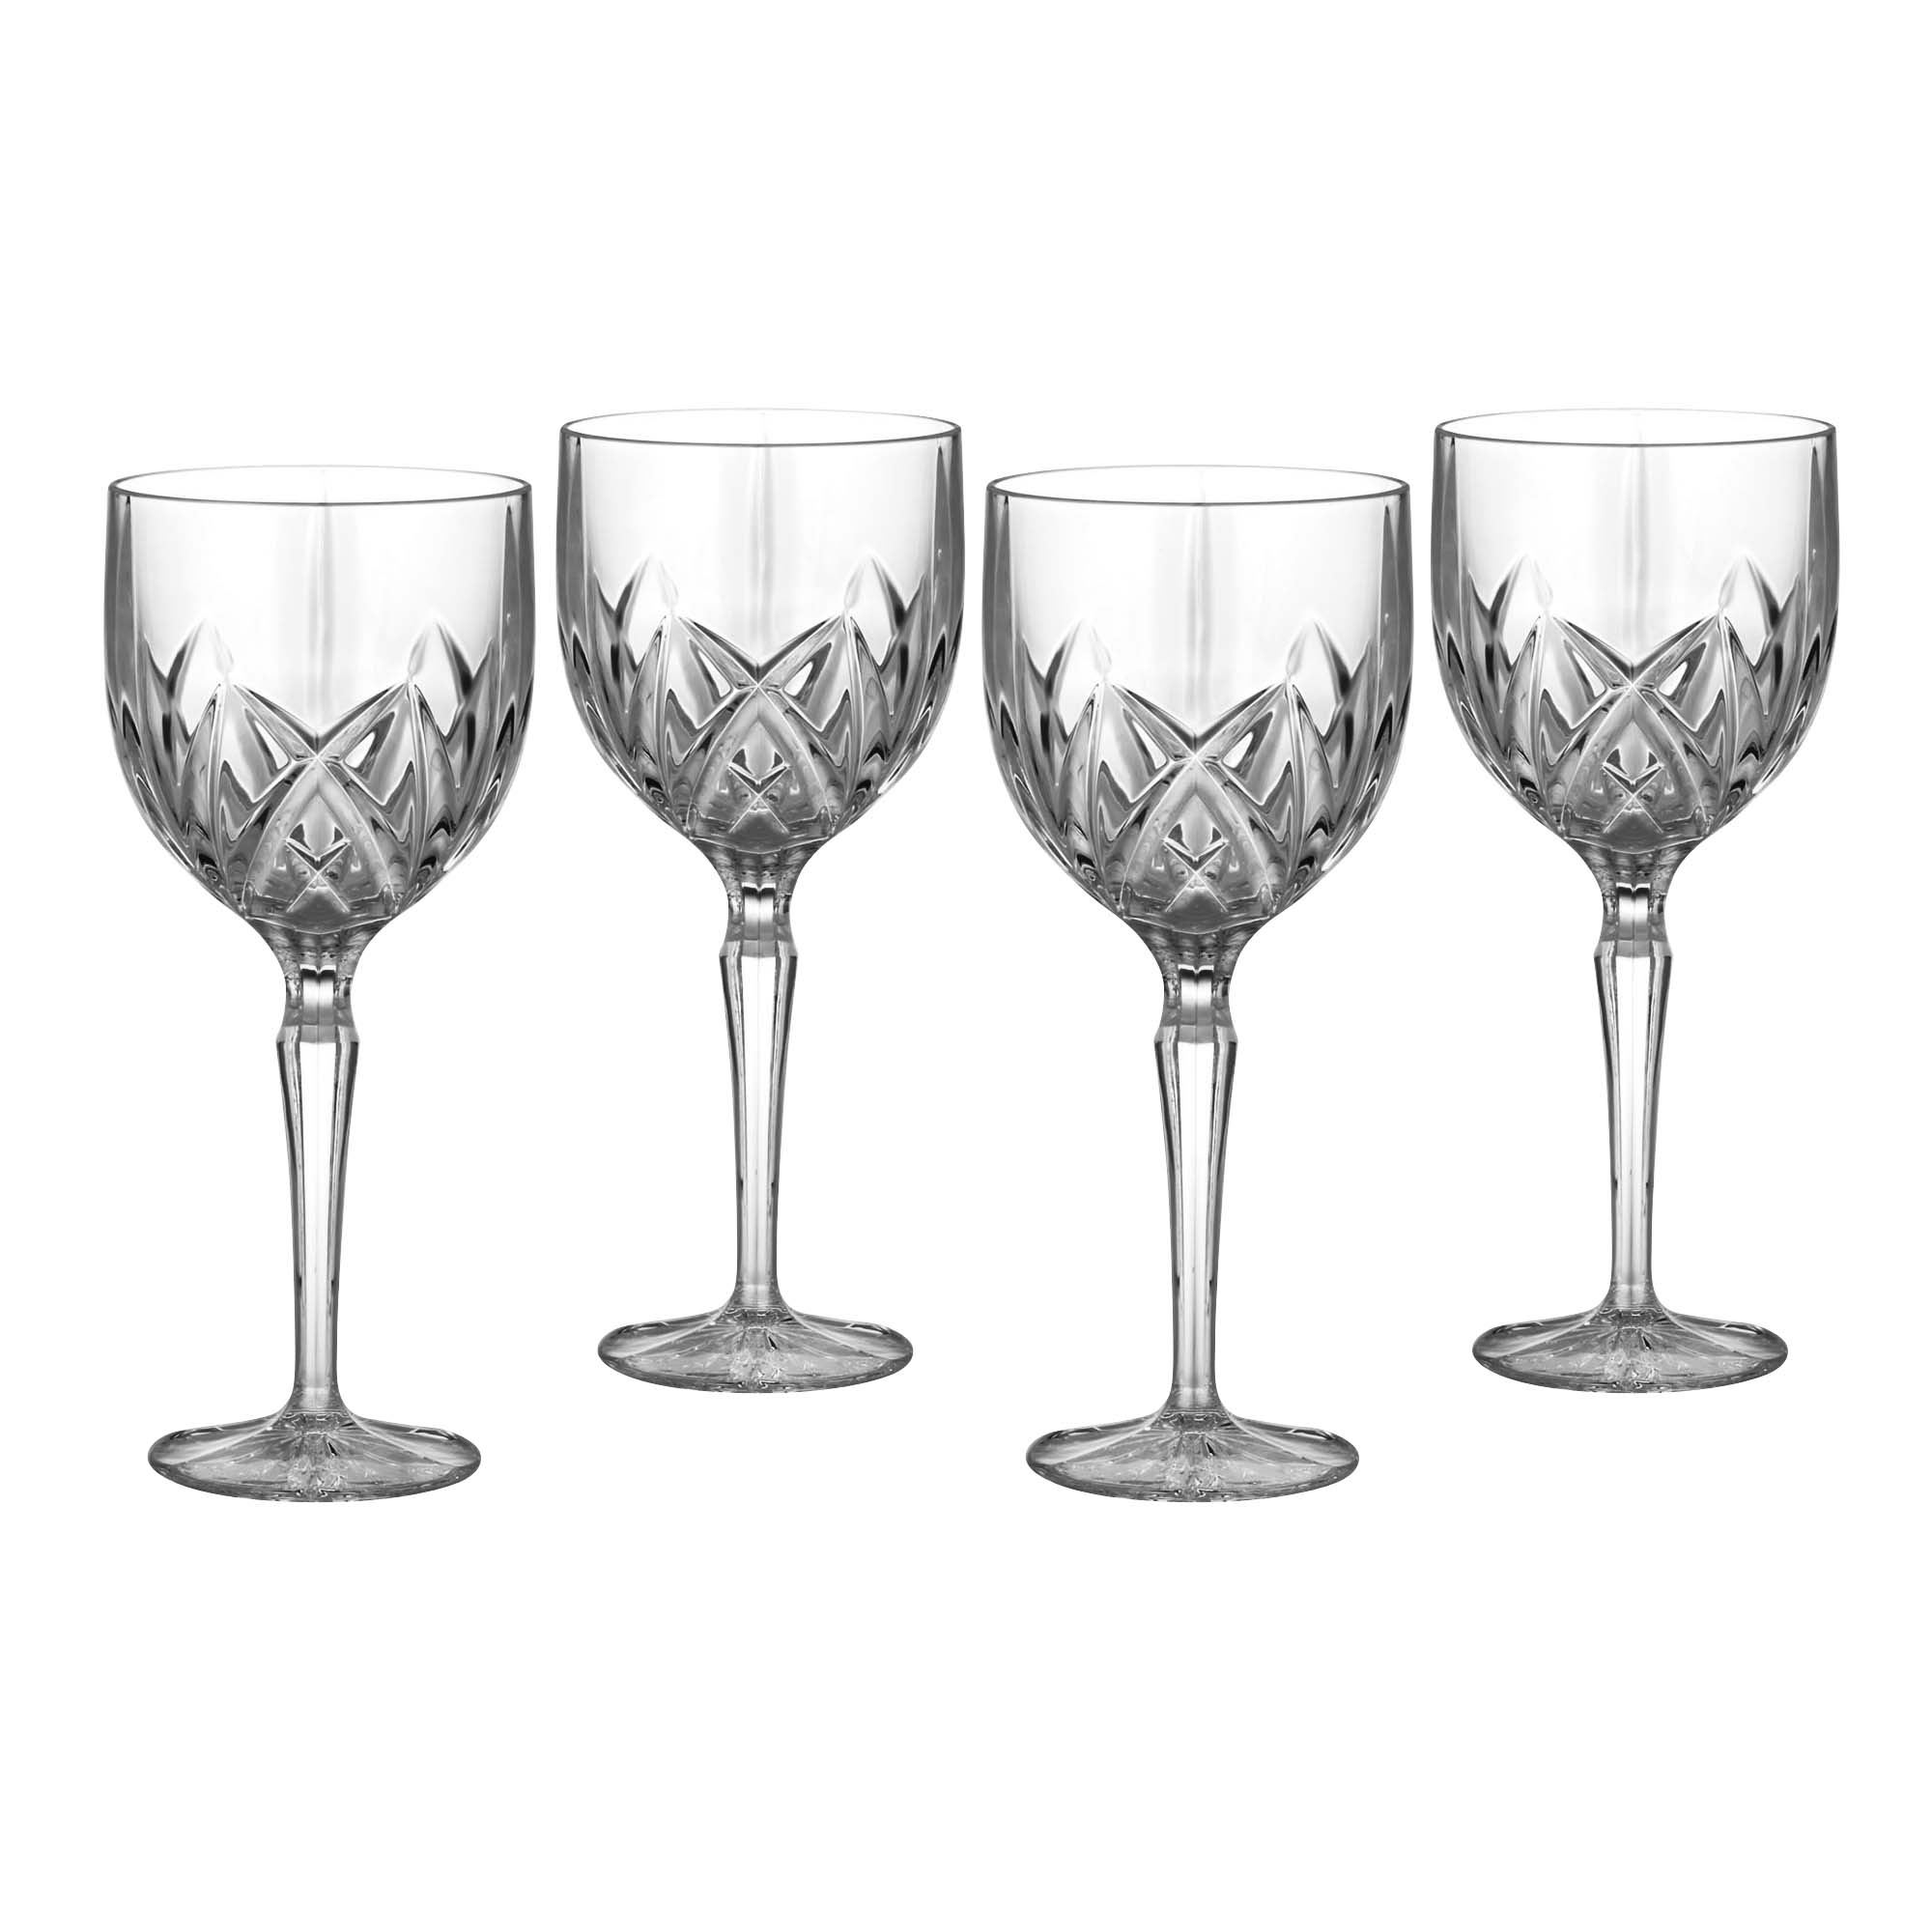 crystal wine glass set wedding gift unique gift-inWine Glasses ...